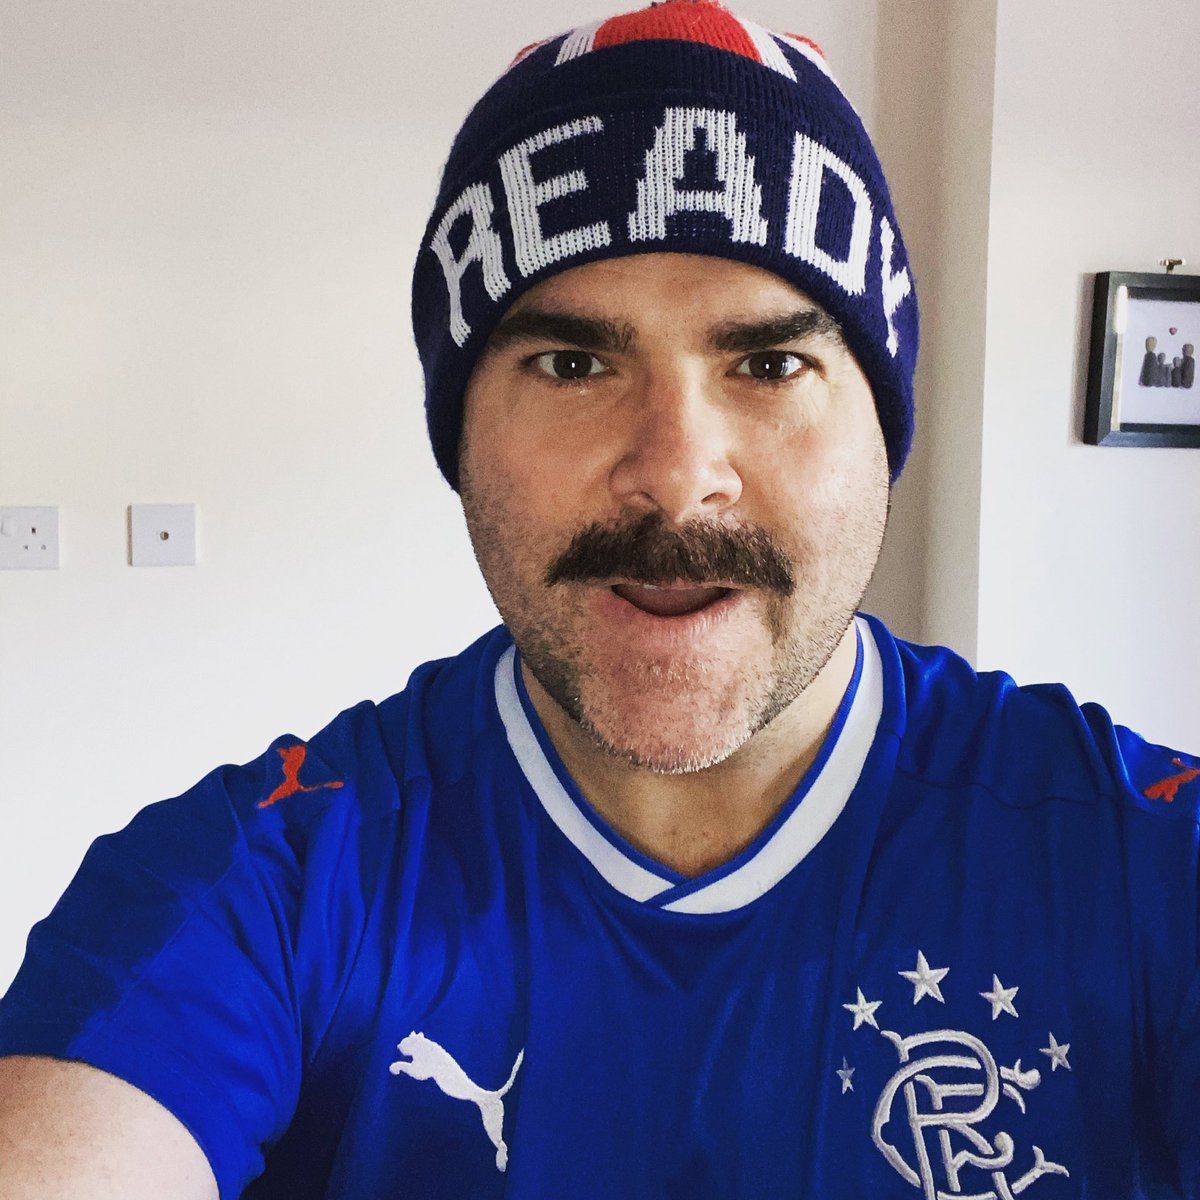 Day 30 - Last shout to raise some funds for my Movember campaign, if there are any bears out there who could help & haven't already, I'd be very grateful. If you have supported someone close to you already, thank you. #WATP #RangersFC #RangersFamily 💙 https://t.co/wLayC8vCCJ https://t.co/7LecYMiKkU